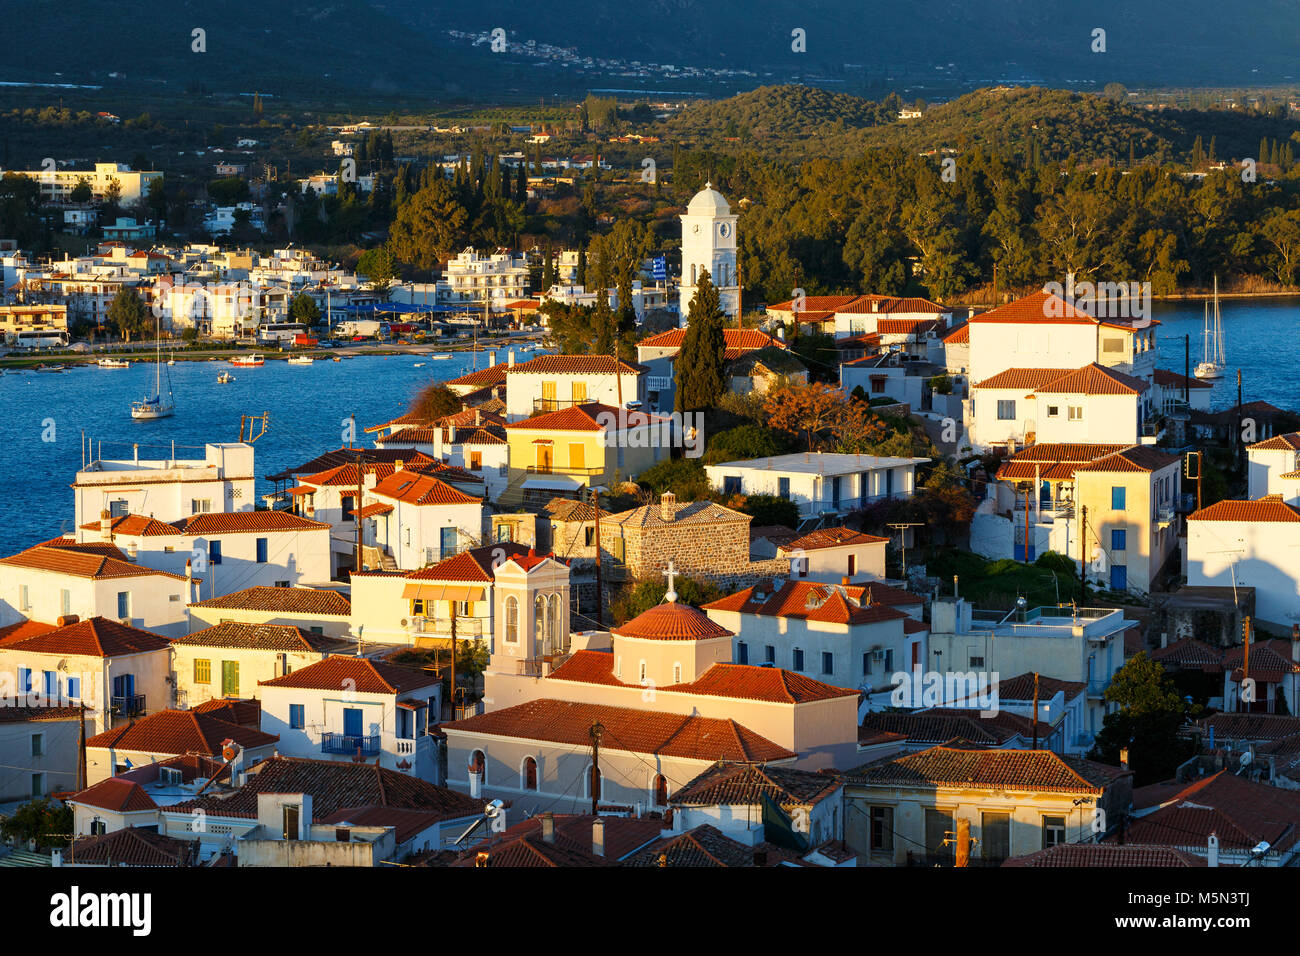 View of Poros island and Galatas village in Peloponnese, Greece. Stock Photo